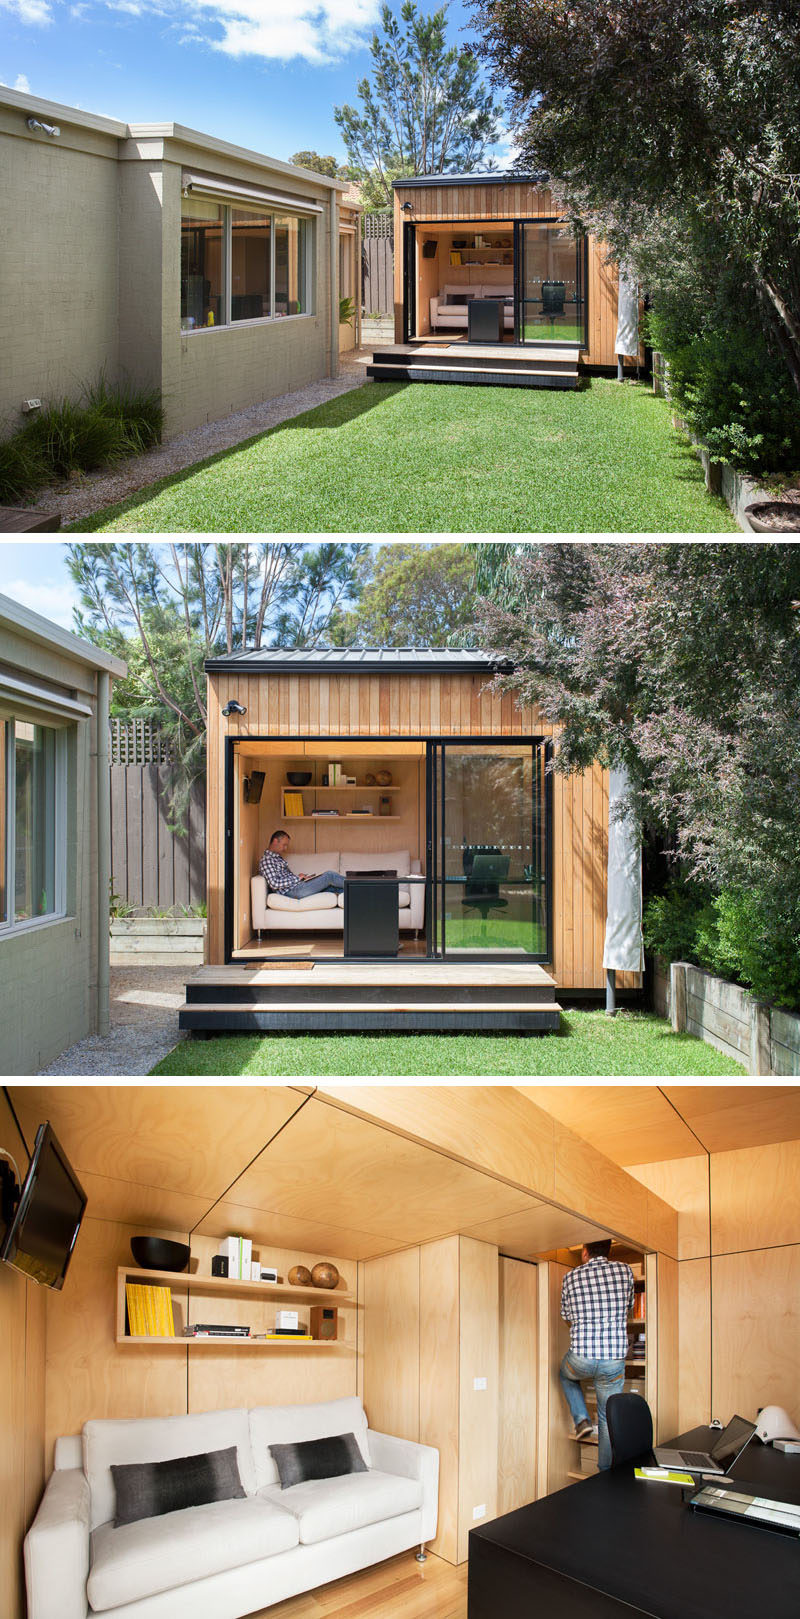 14 Modern Backyard Offices Studios And Guest Houses